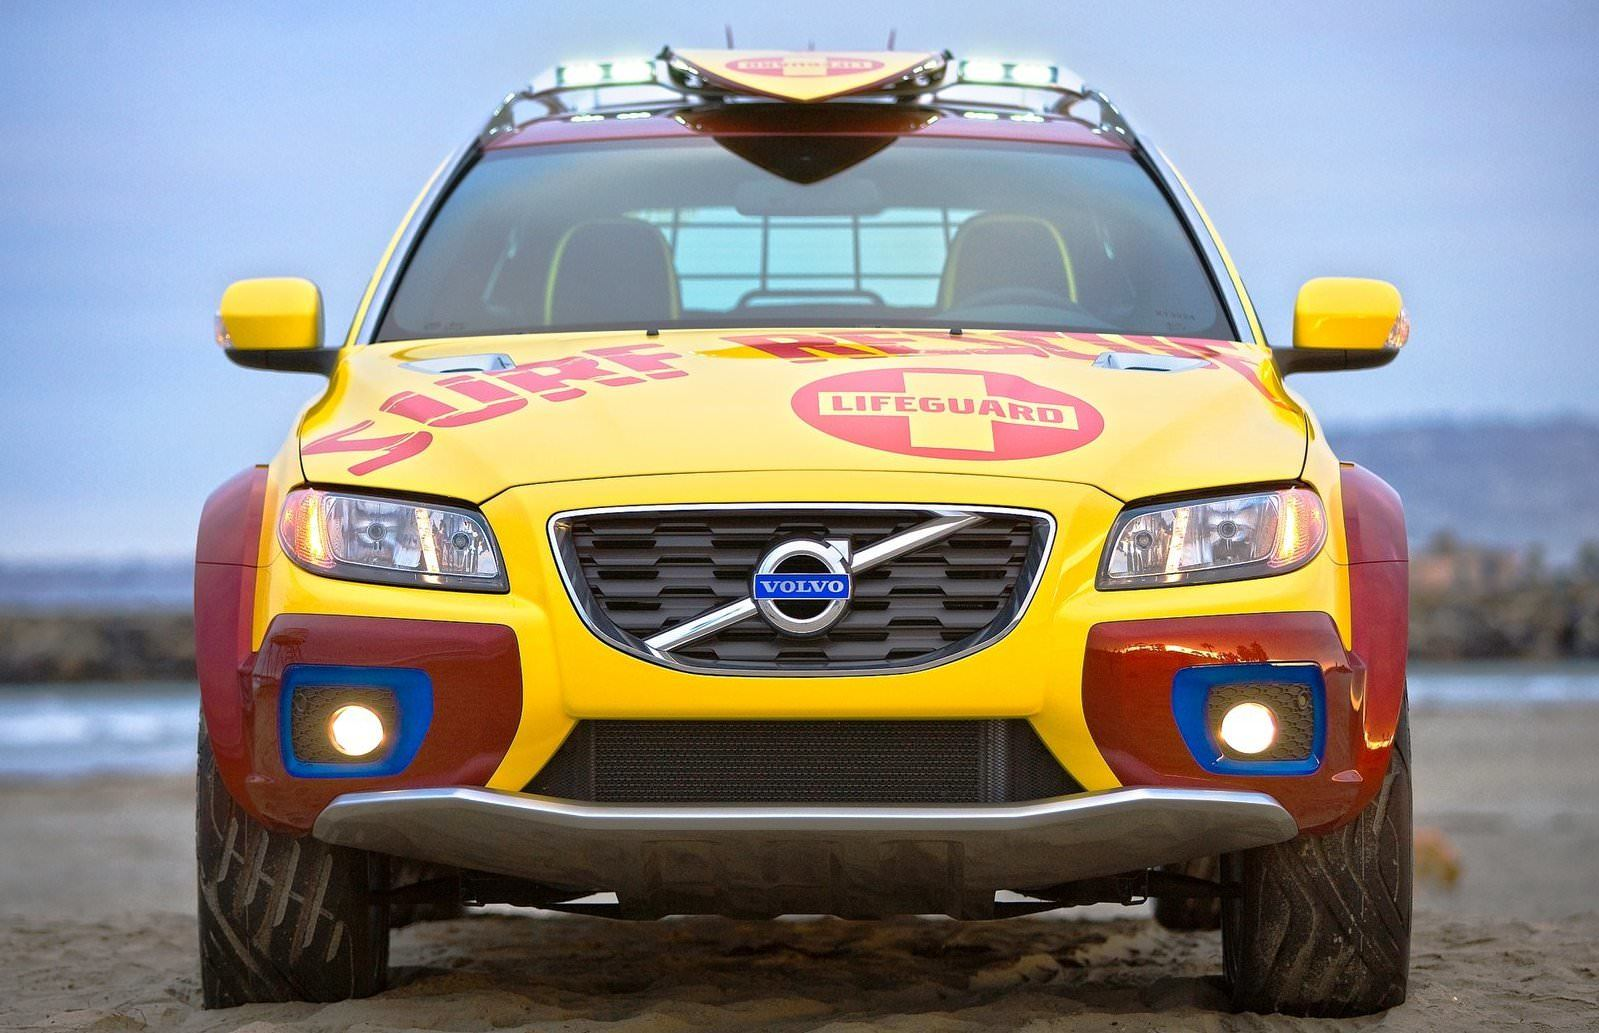 2005 Volvo XC70 AT and 2007 XC70 Surf Rescue are California Surf'n'Turf Dreams 30